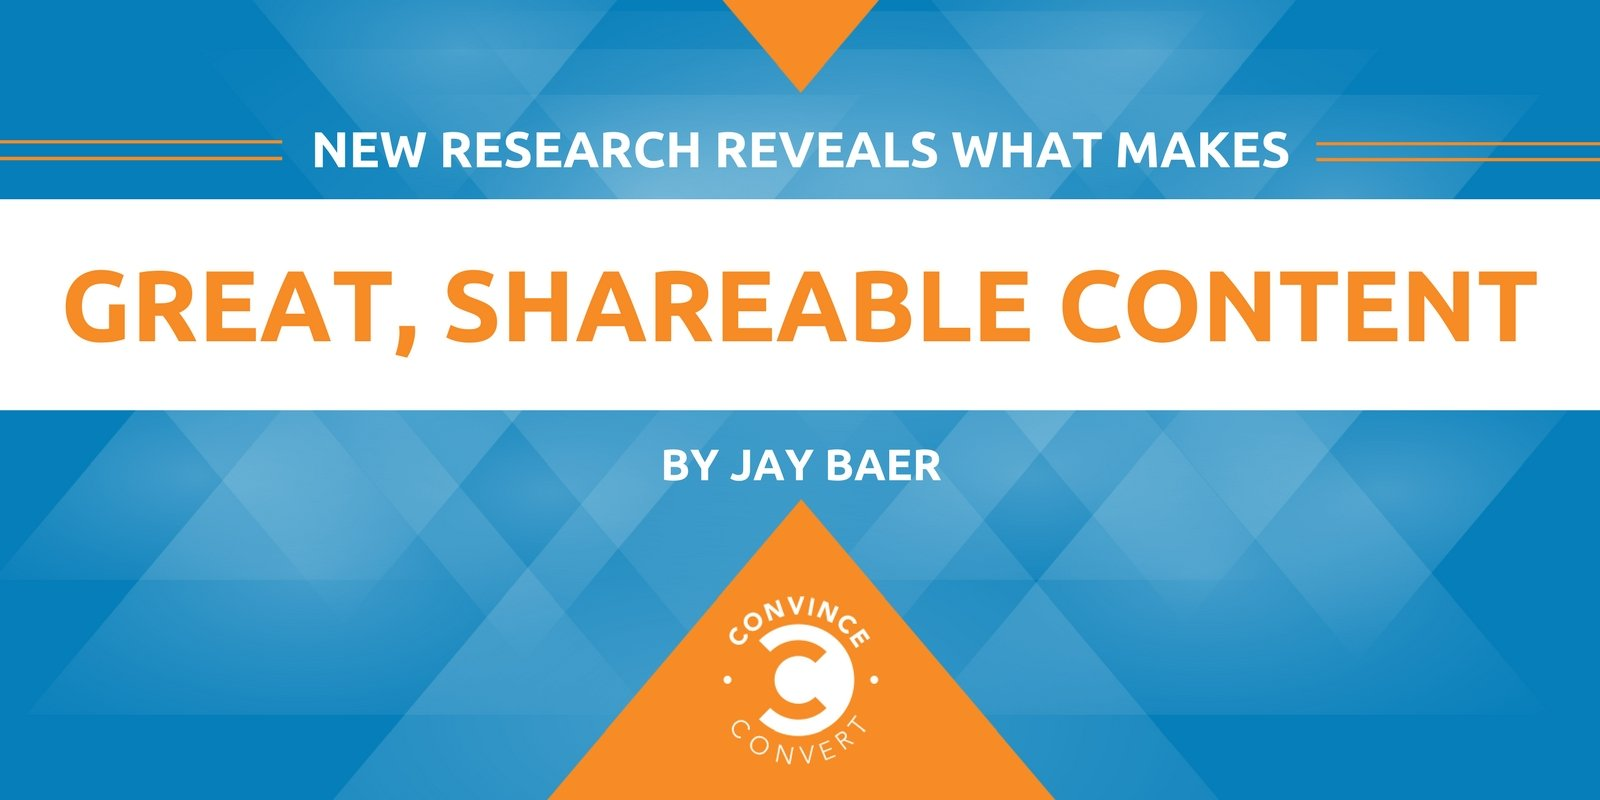 New Research Reveals What Makes Great, Shareable Content